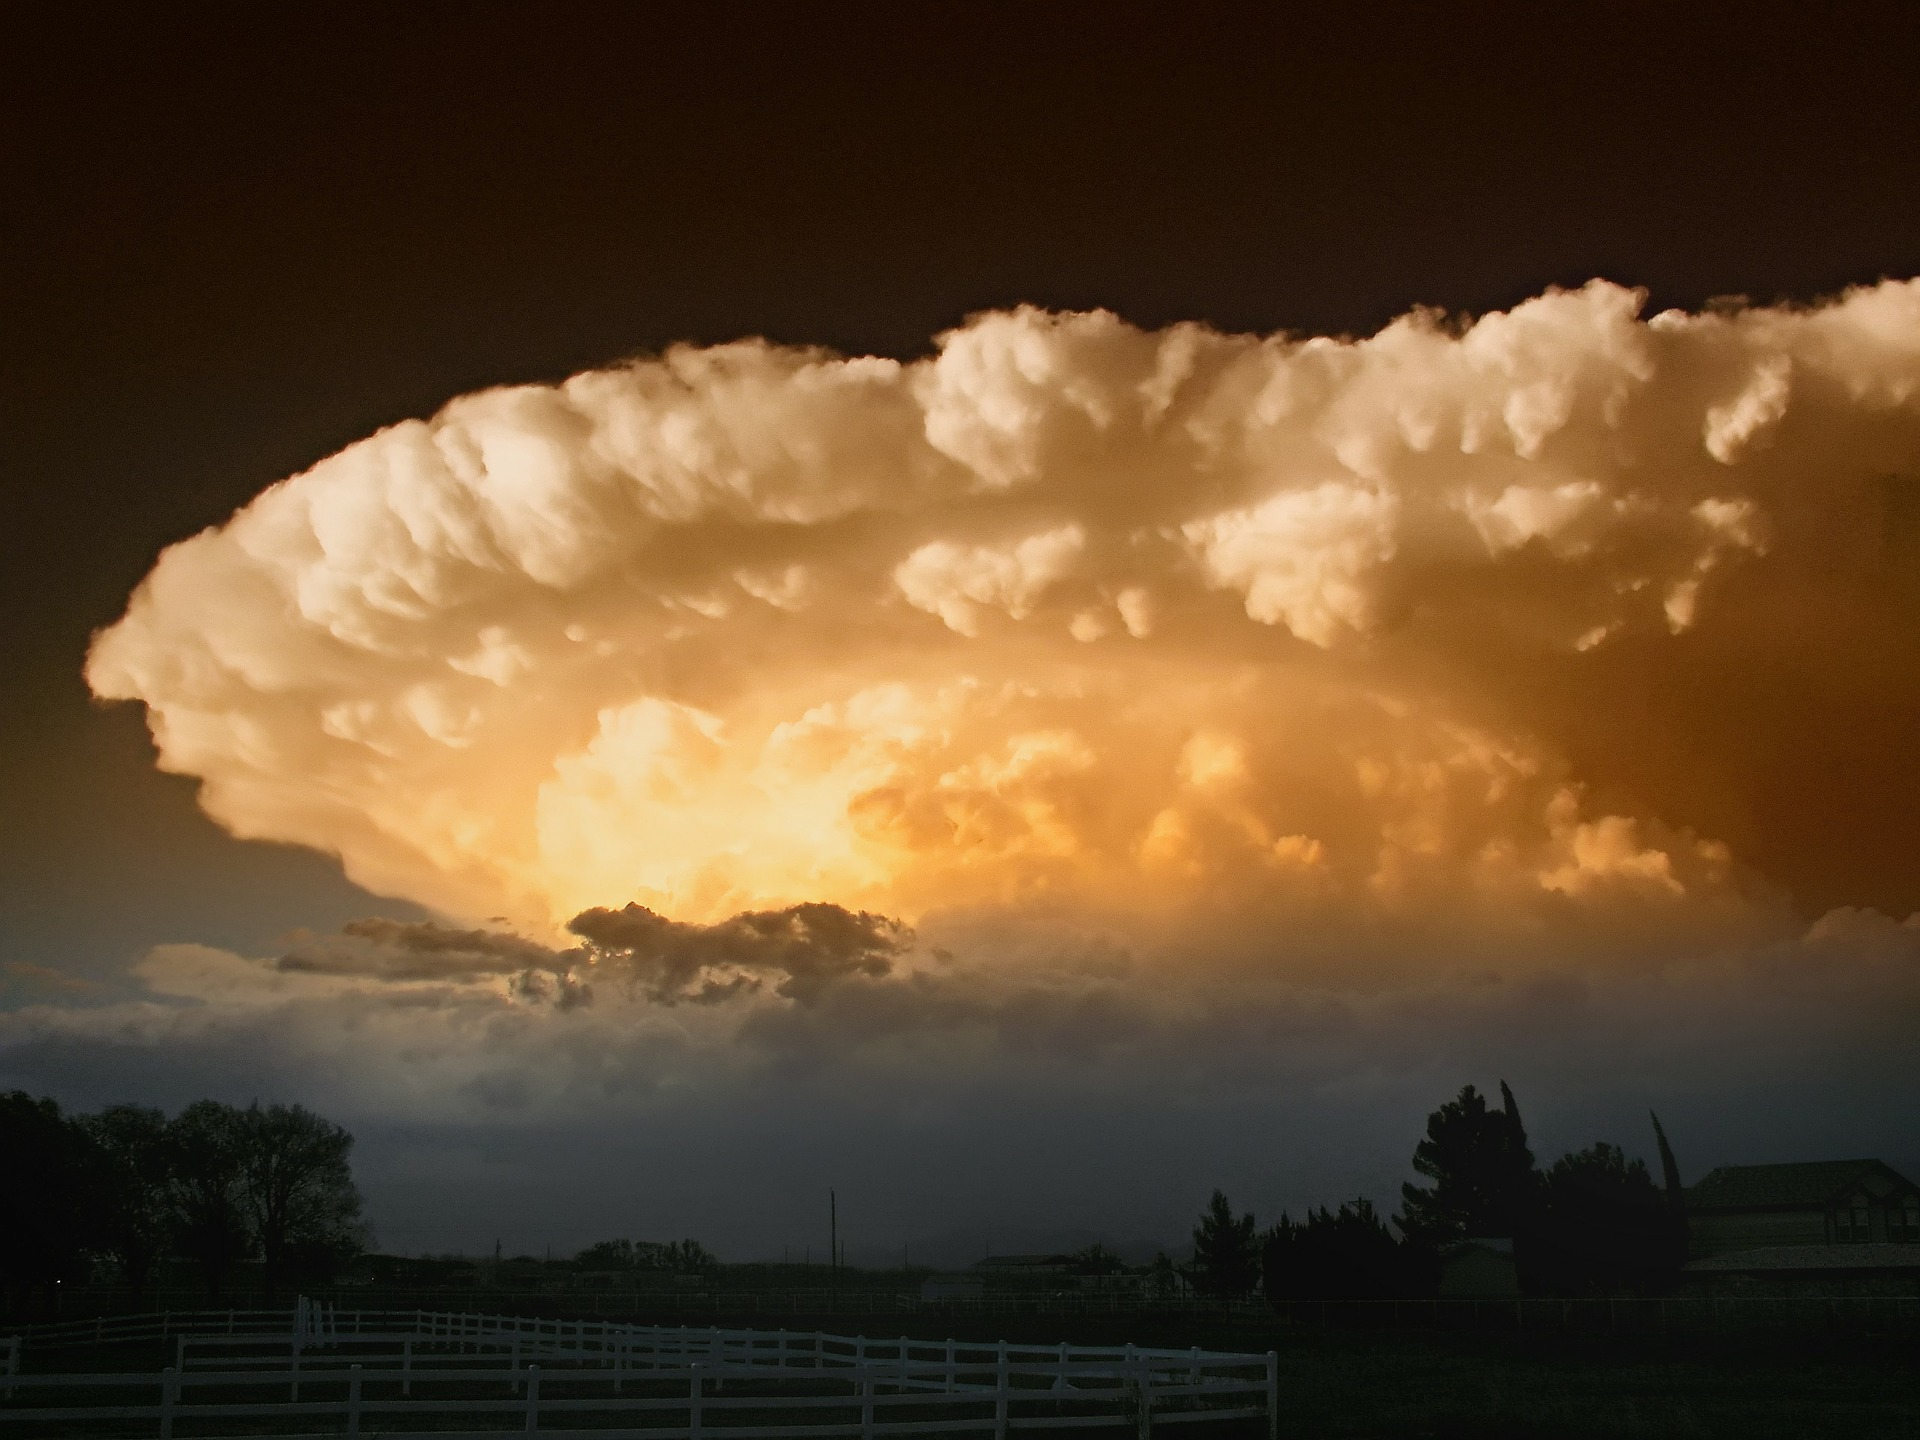 supercell-139398_1920